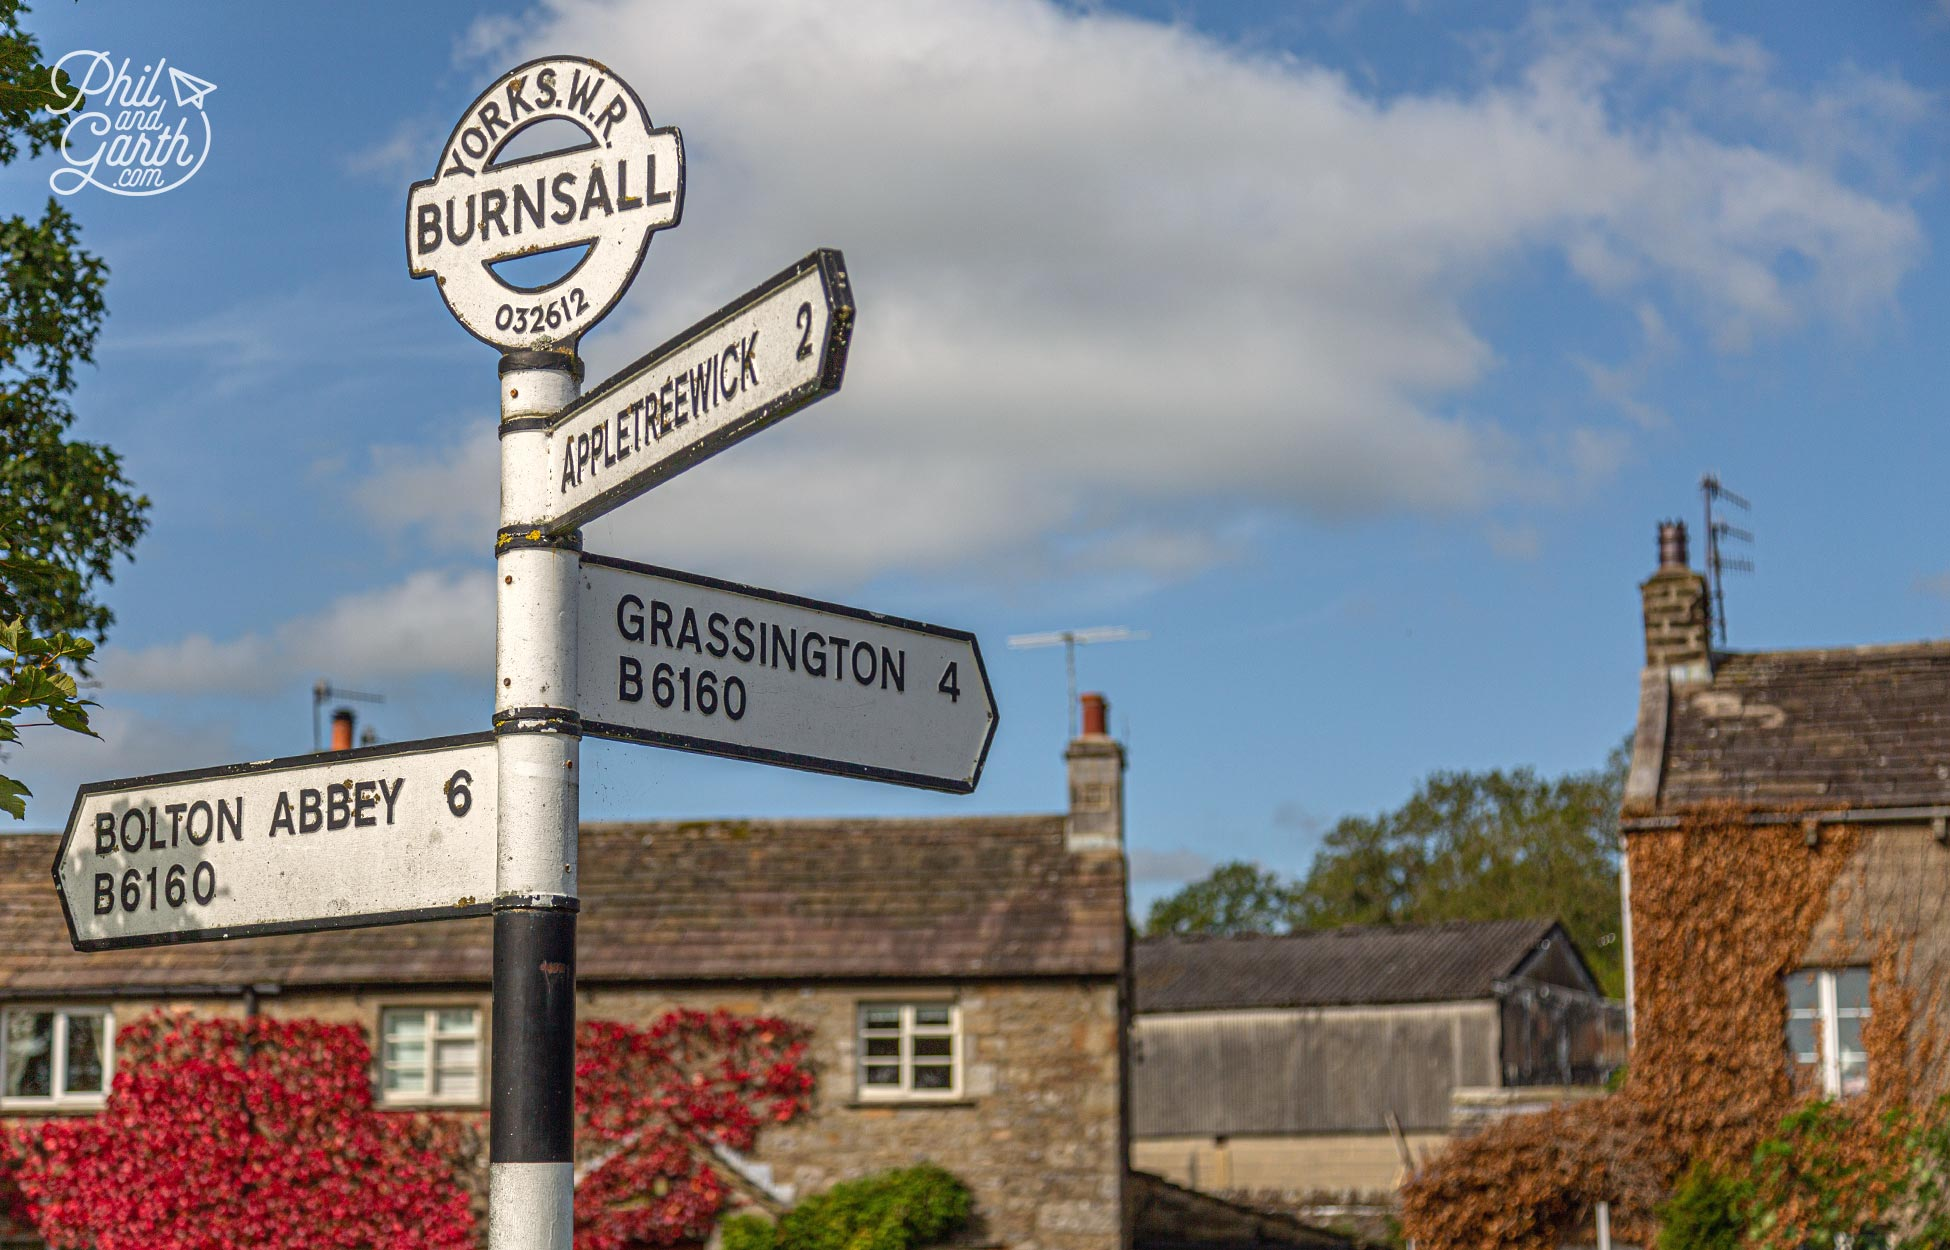 An old road sign in Burnsall